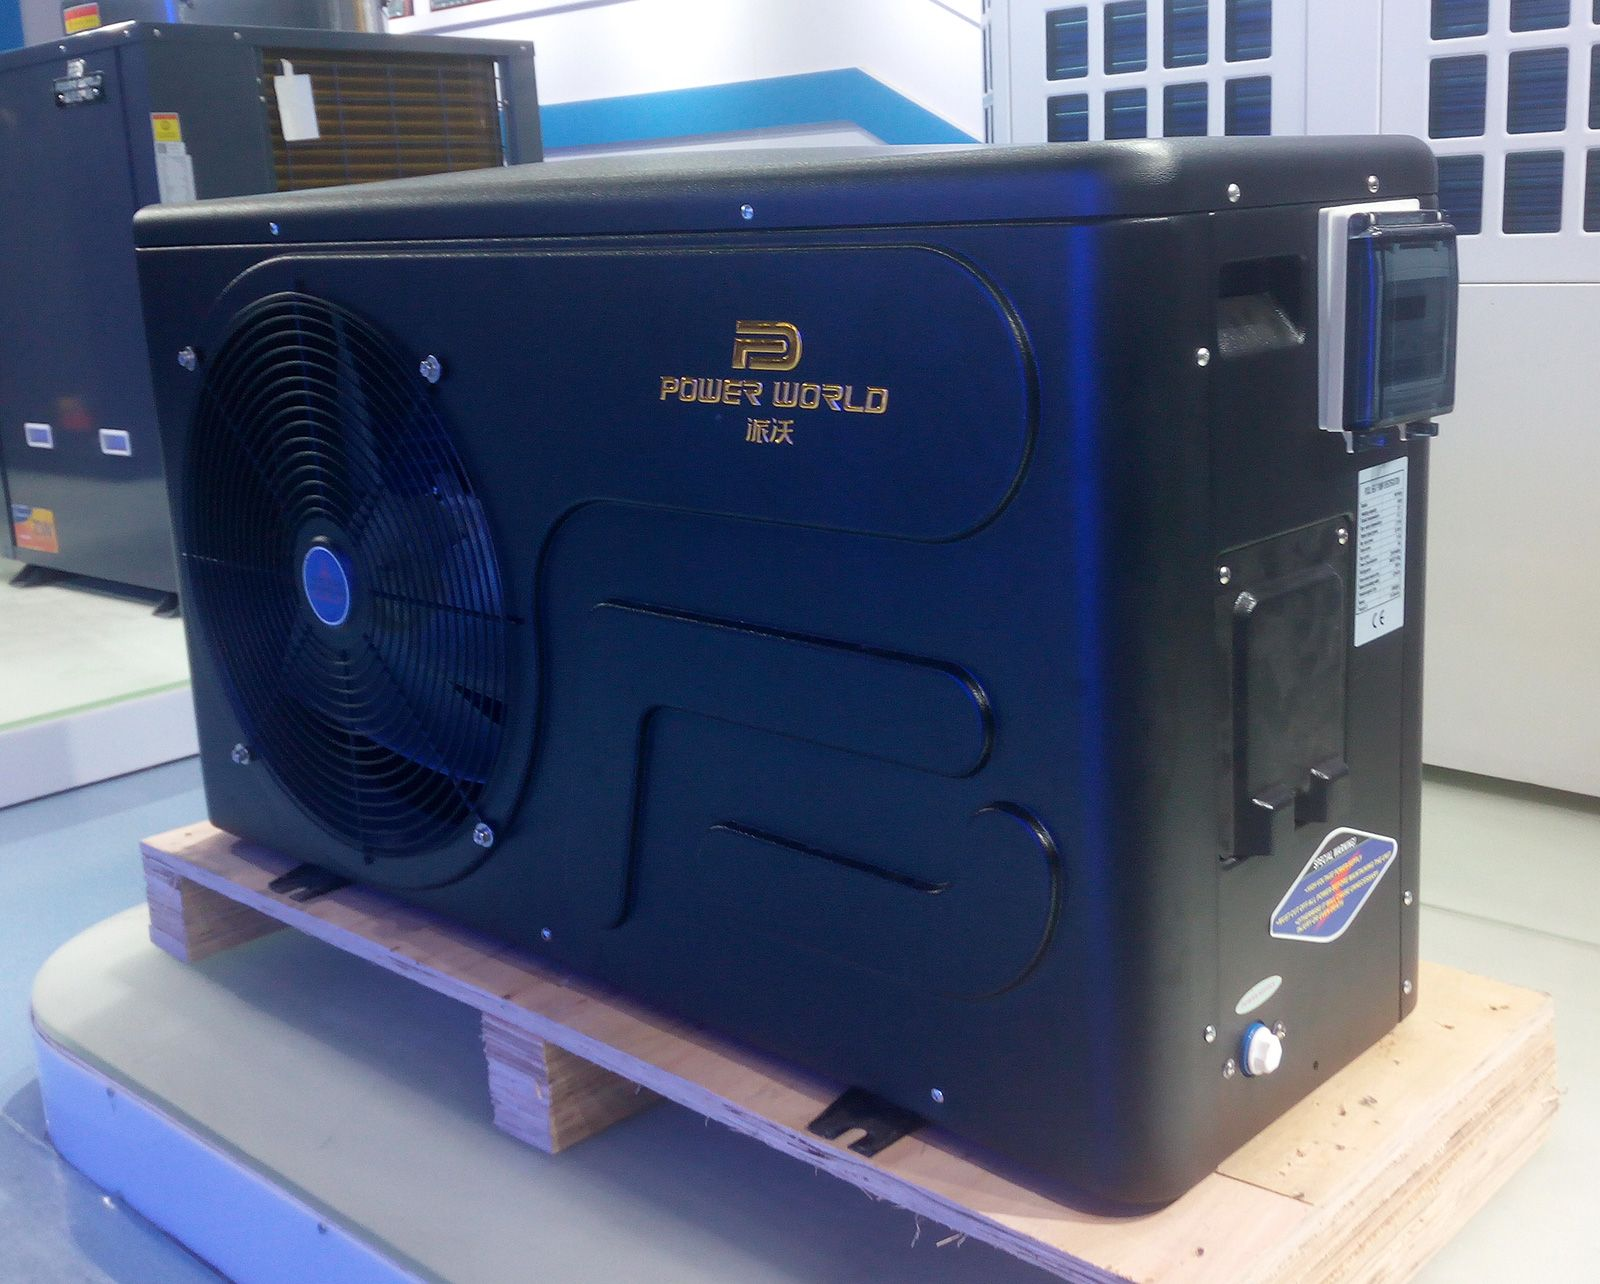 Powerworld airtowater heat pump for swimming pool, with